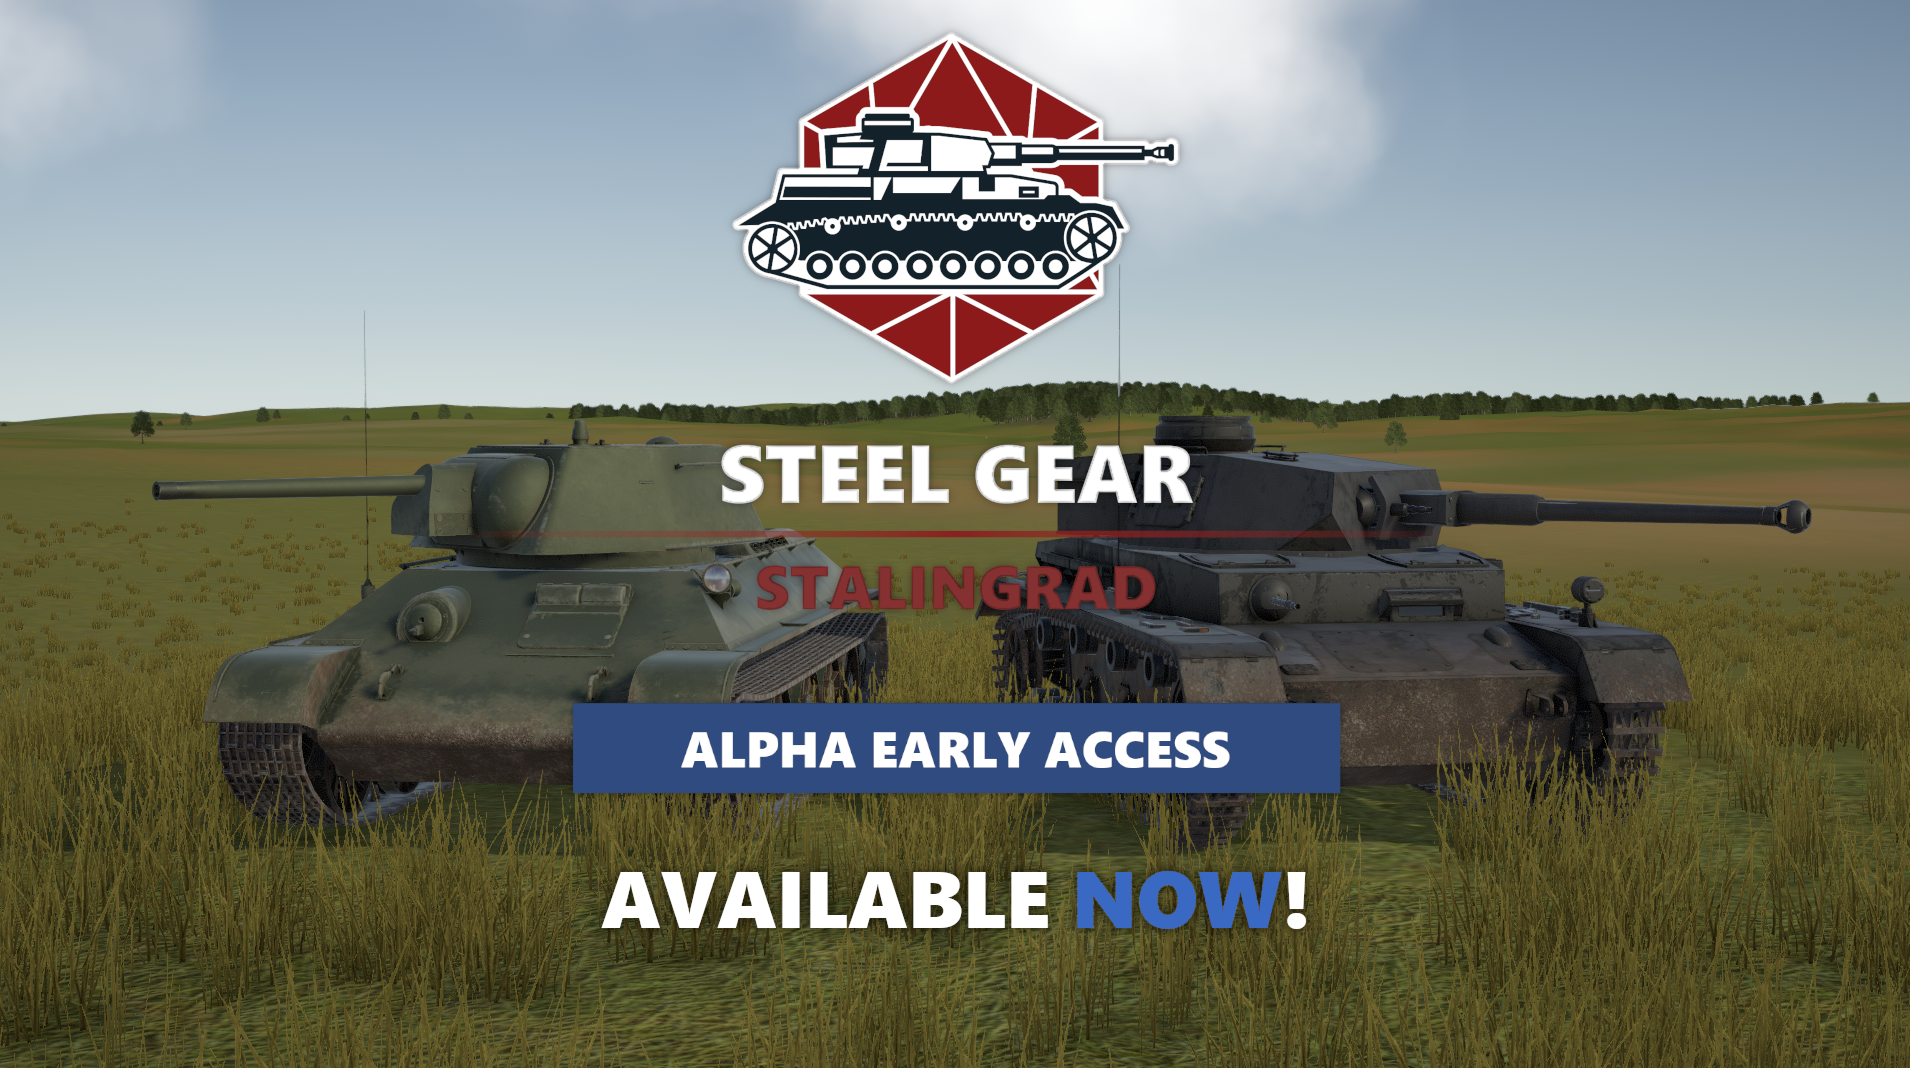 Alpha Early Access Available! AvailableNow